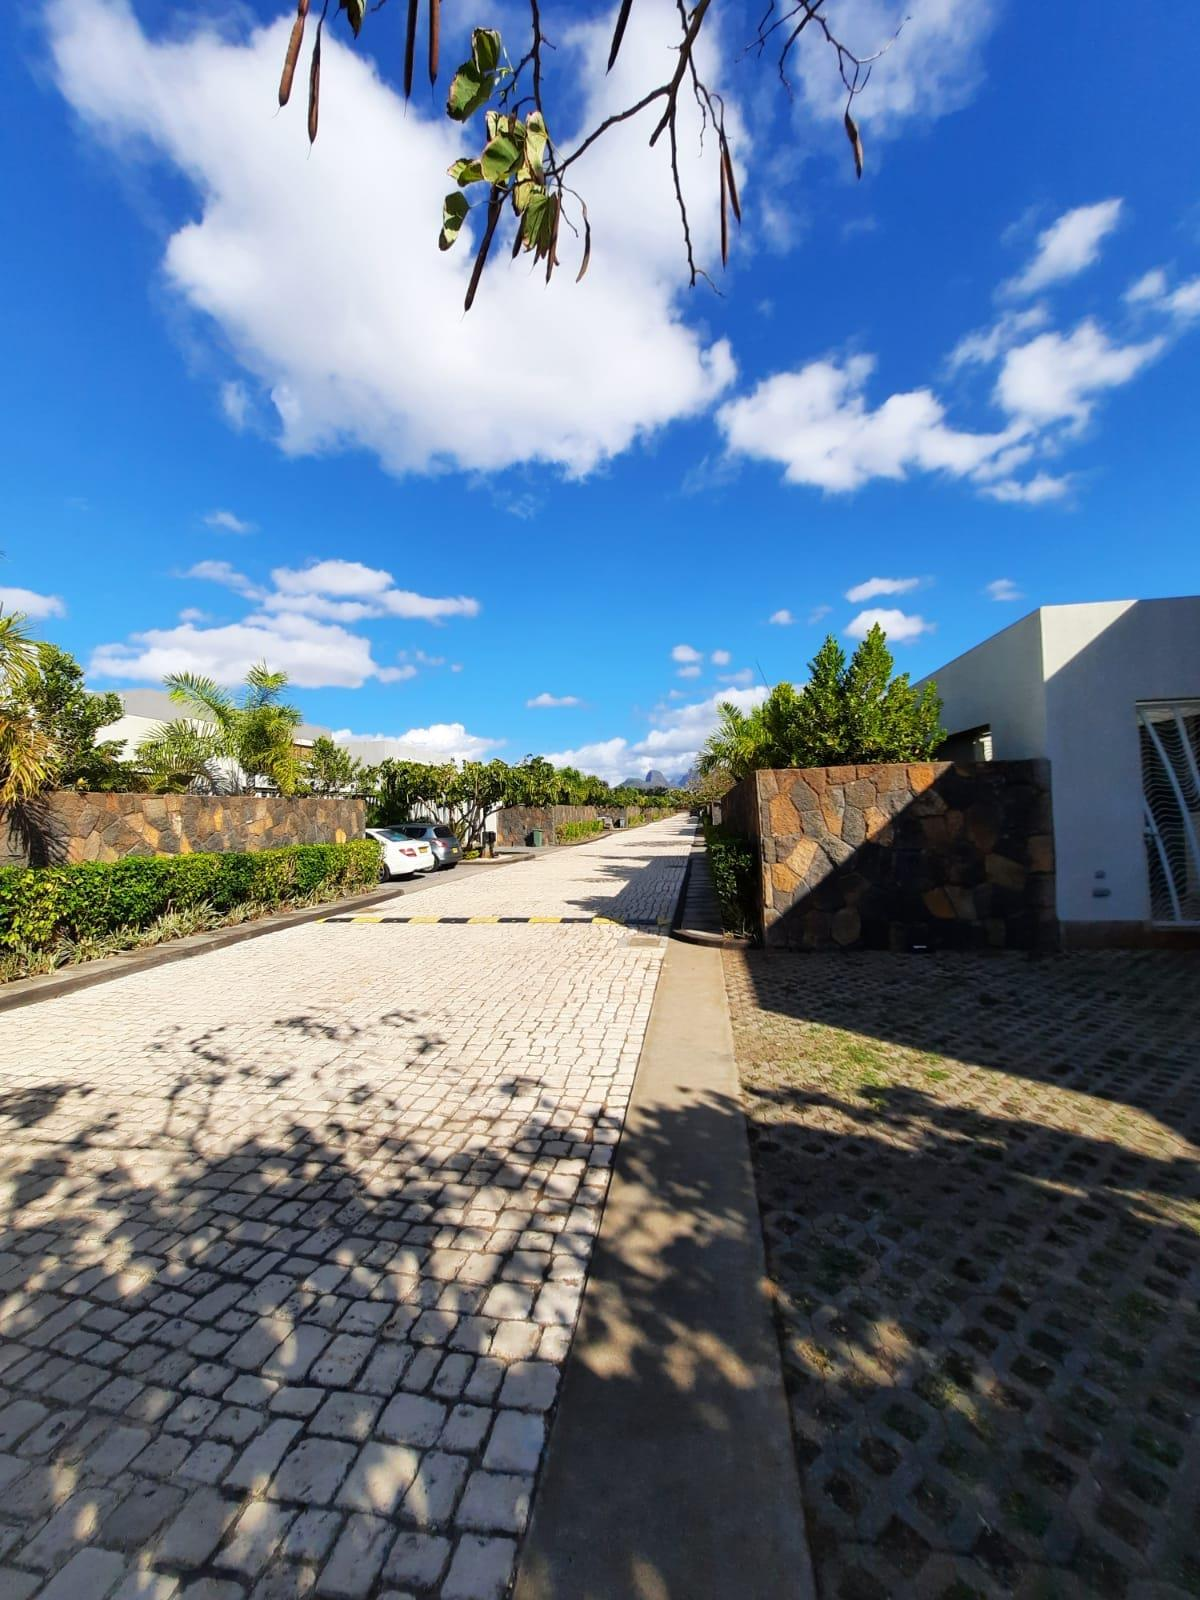 3 Bedroom Townhouse For Sale in Balaclava